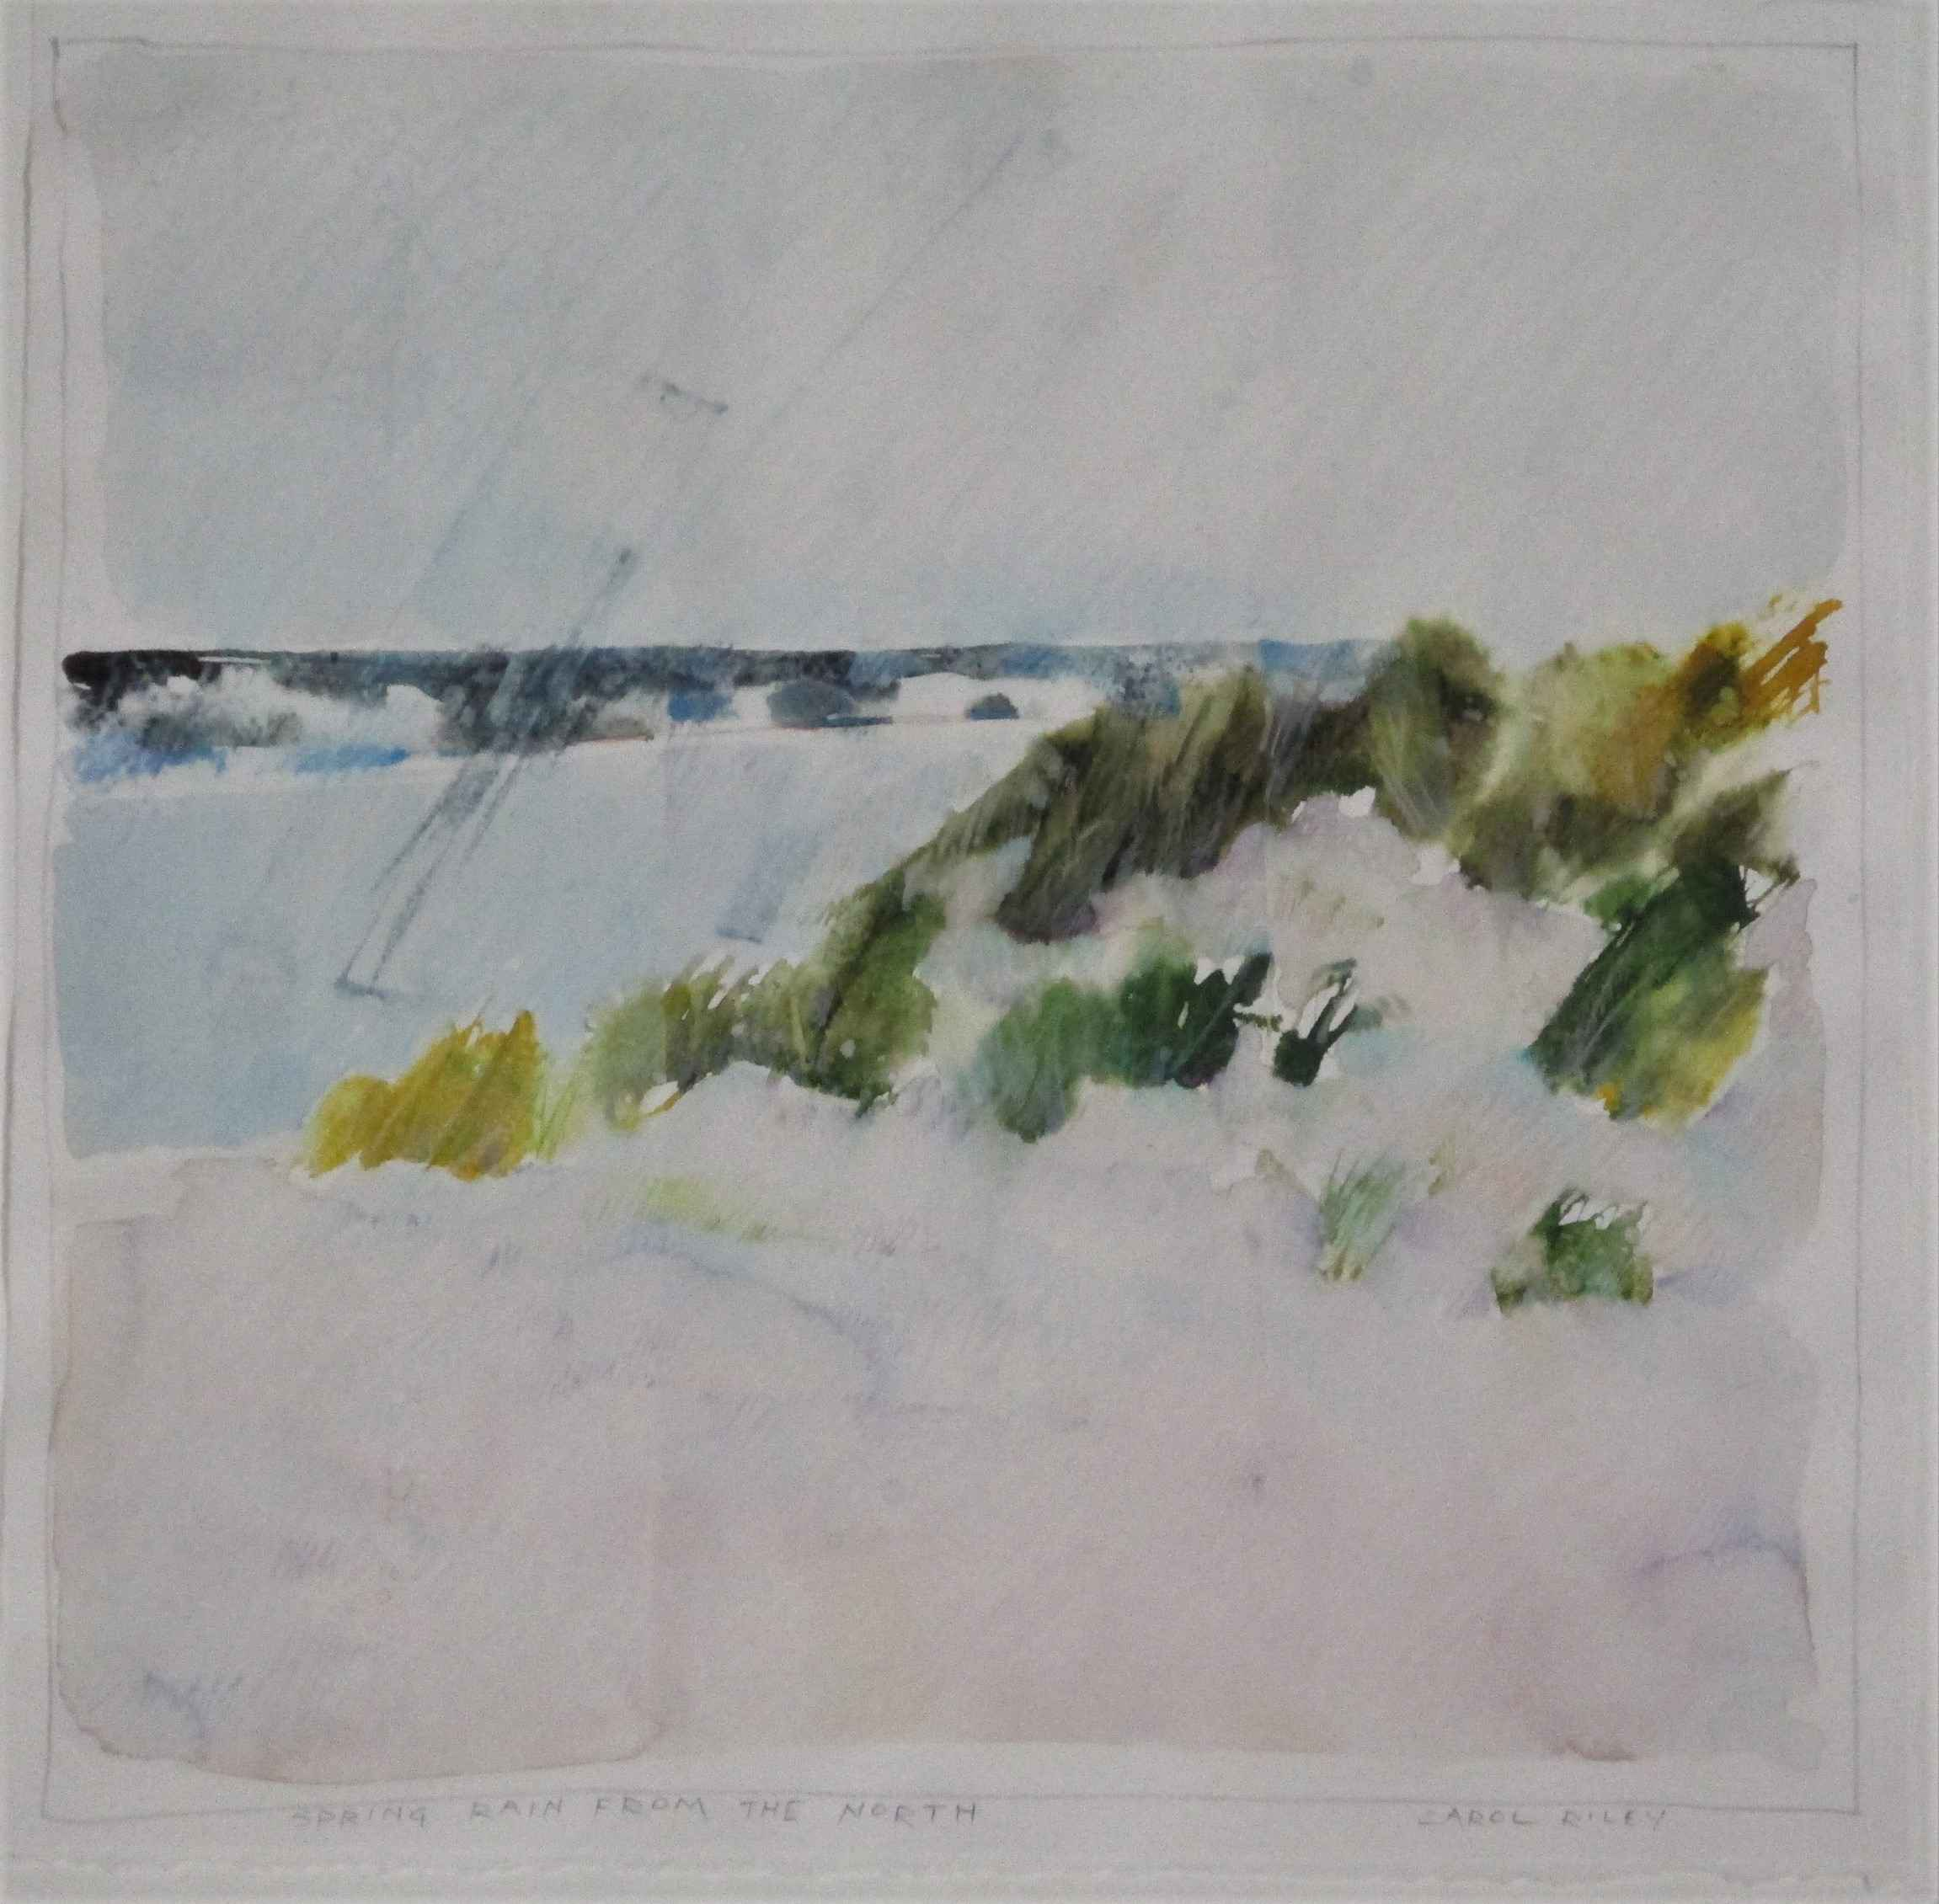 Spring Rain from the ... by  Carol Riley - Masterpiece Online